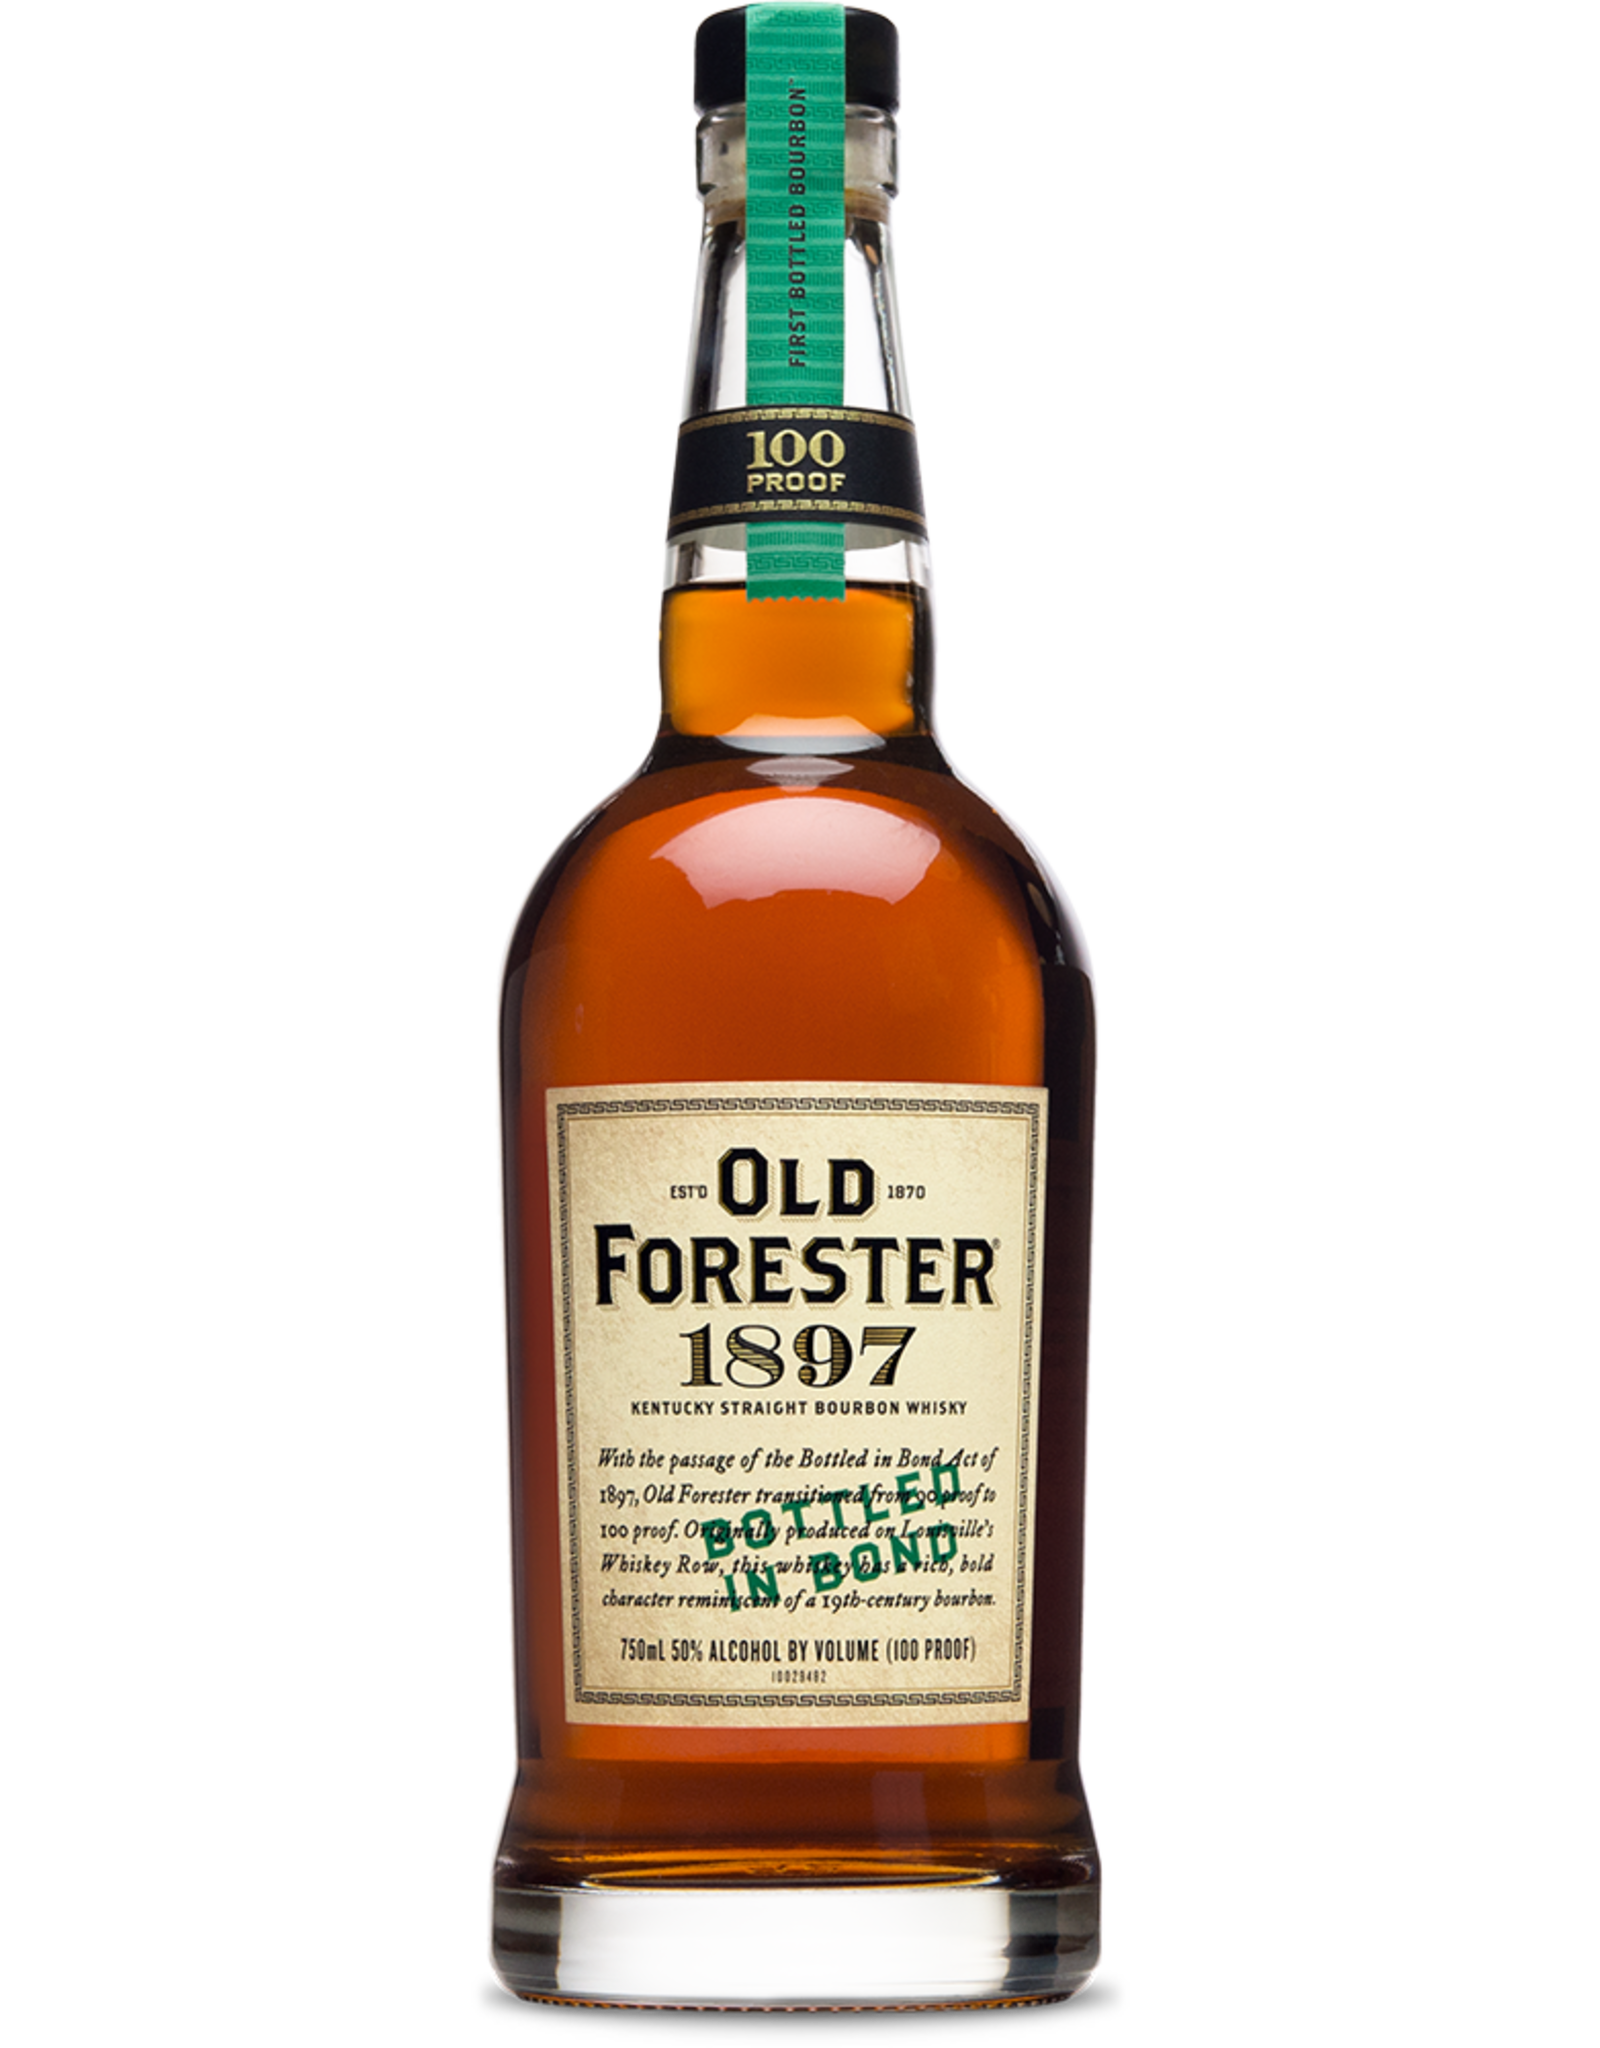 Old Forester 1897